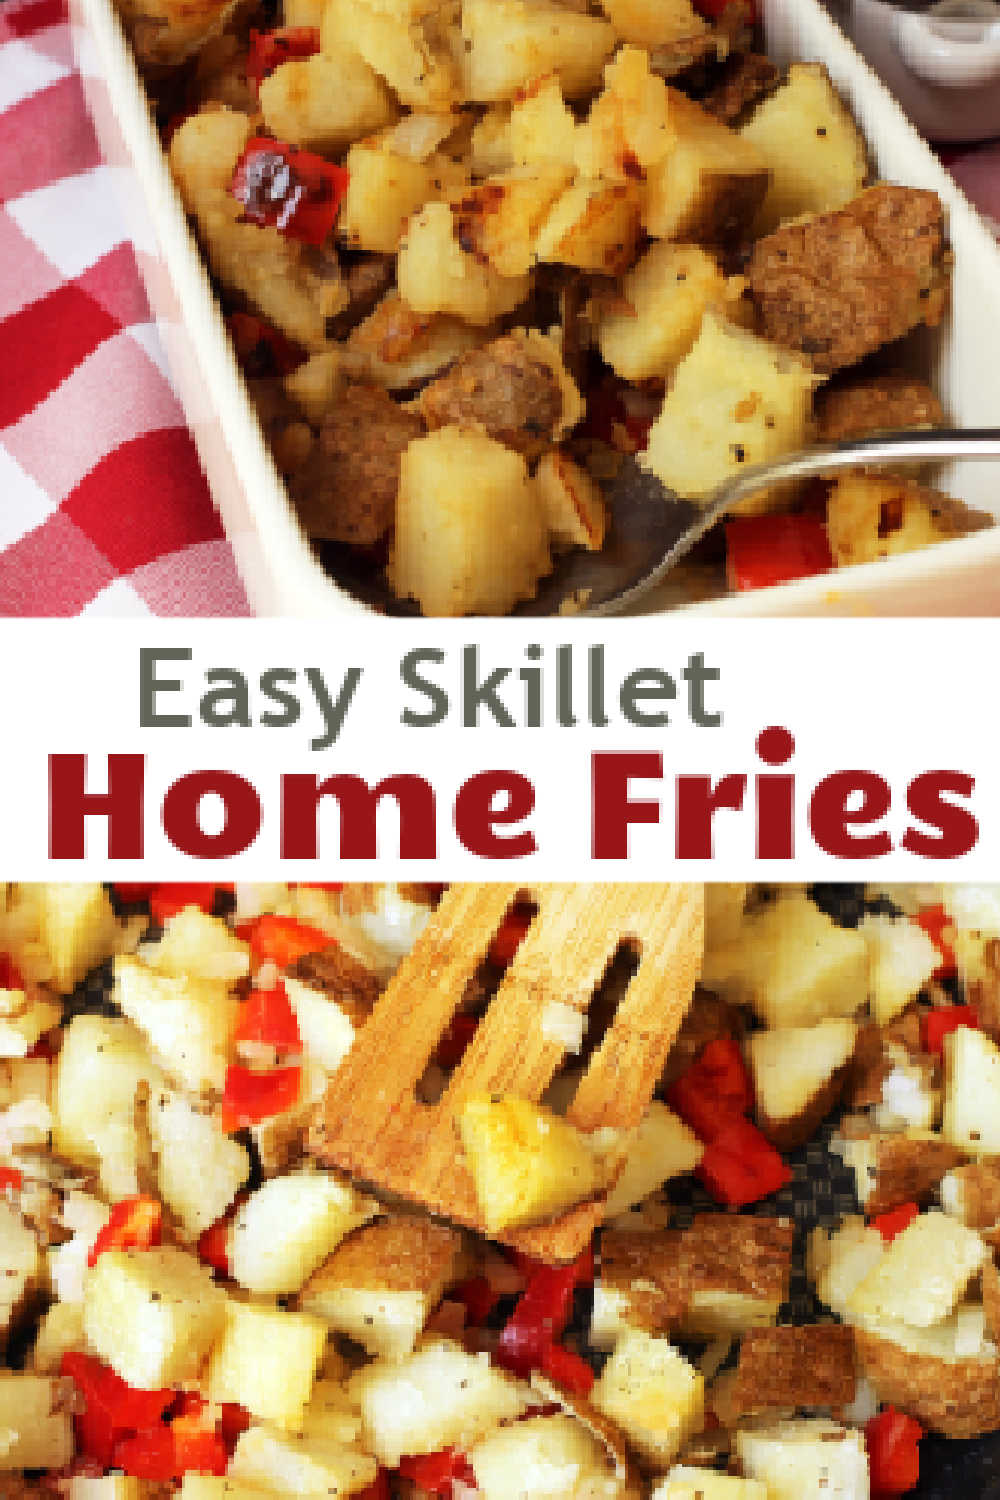 A plate and skillet with home fries